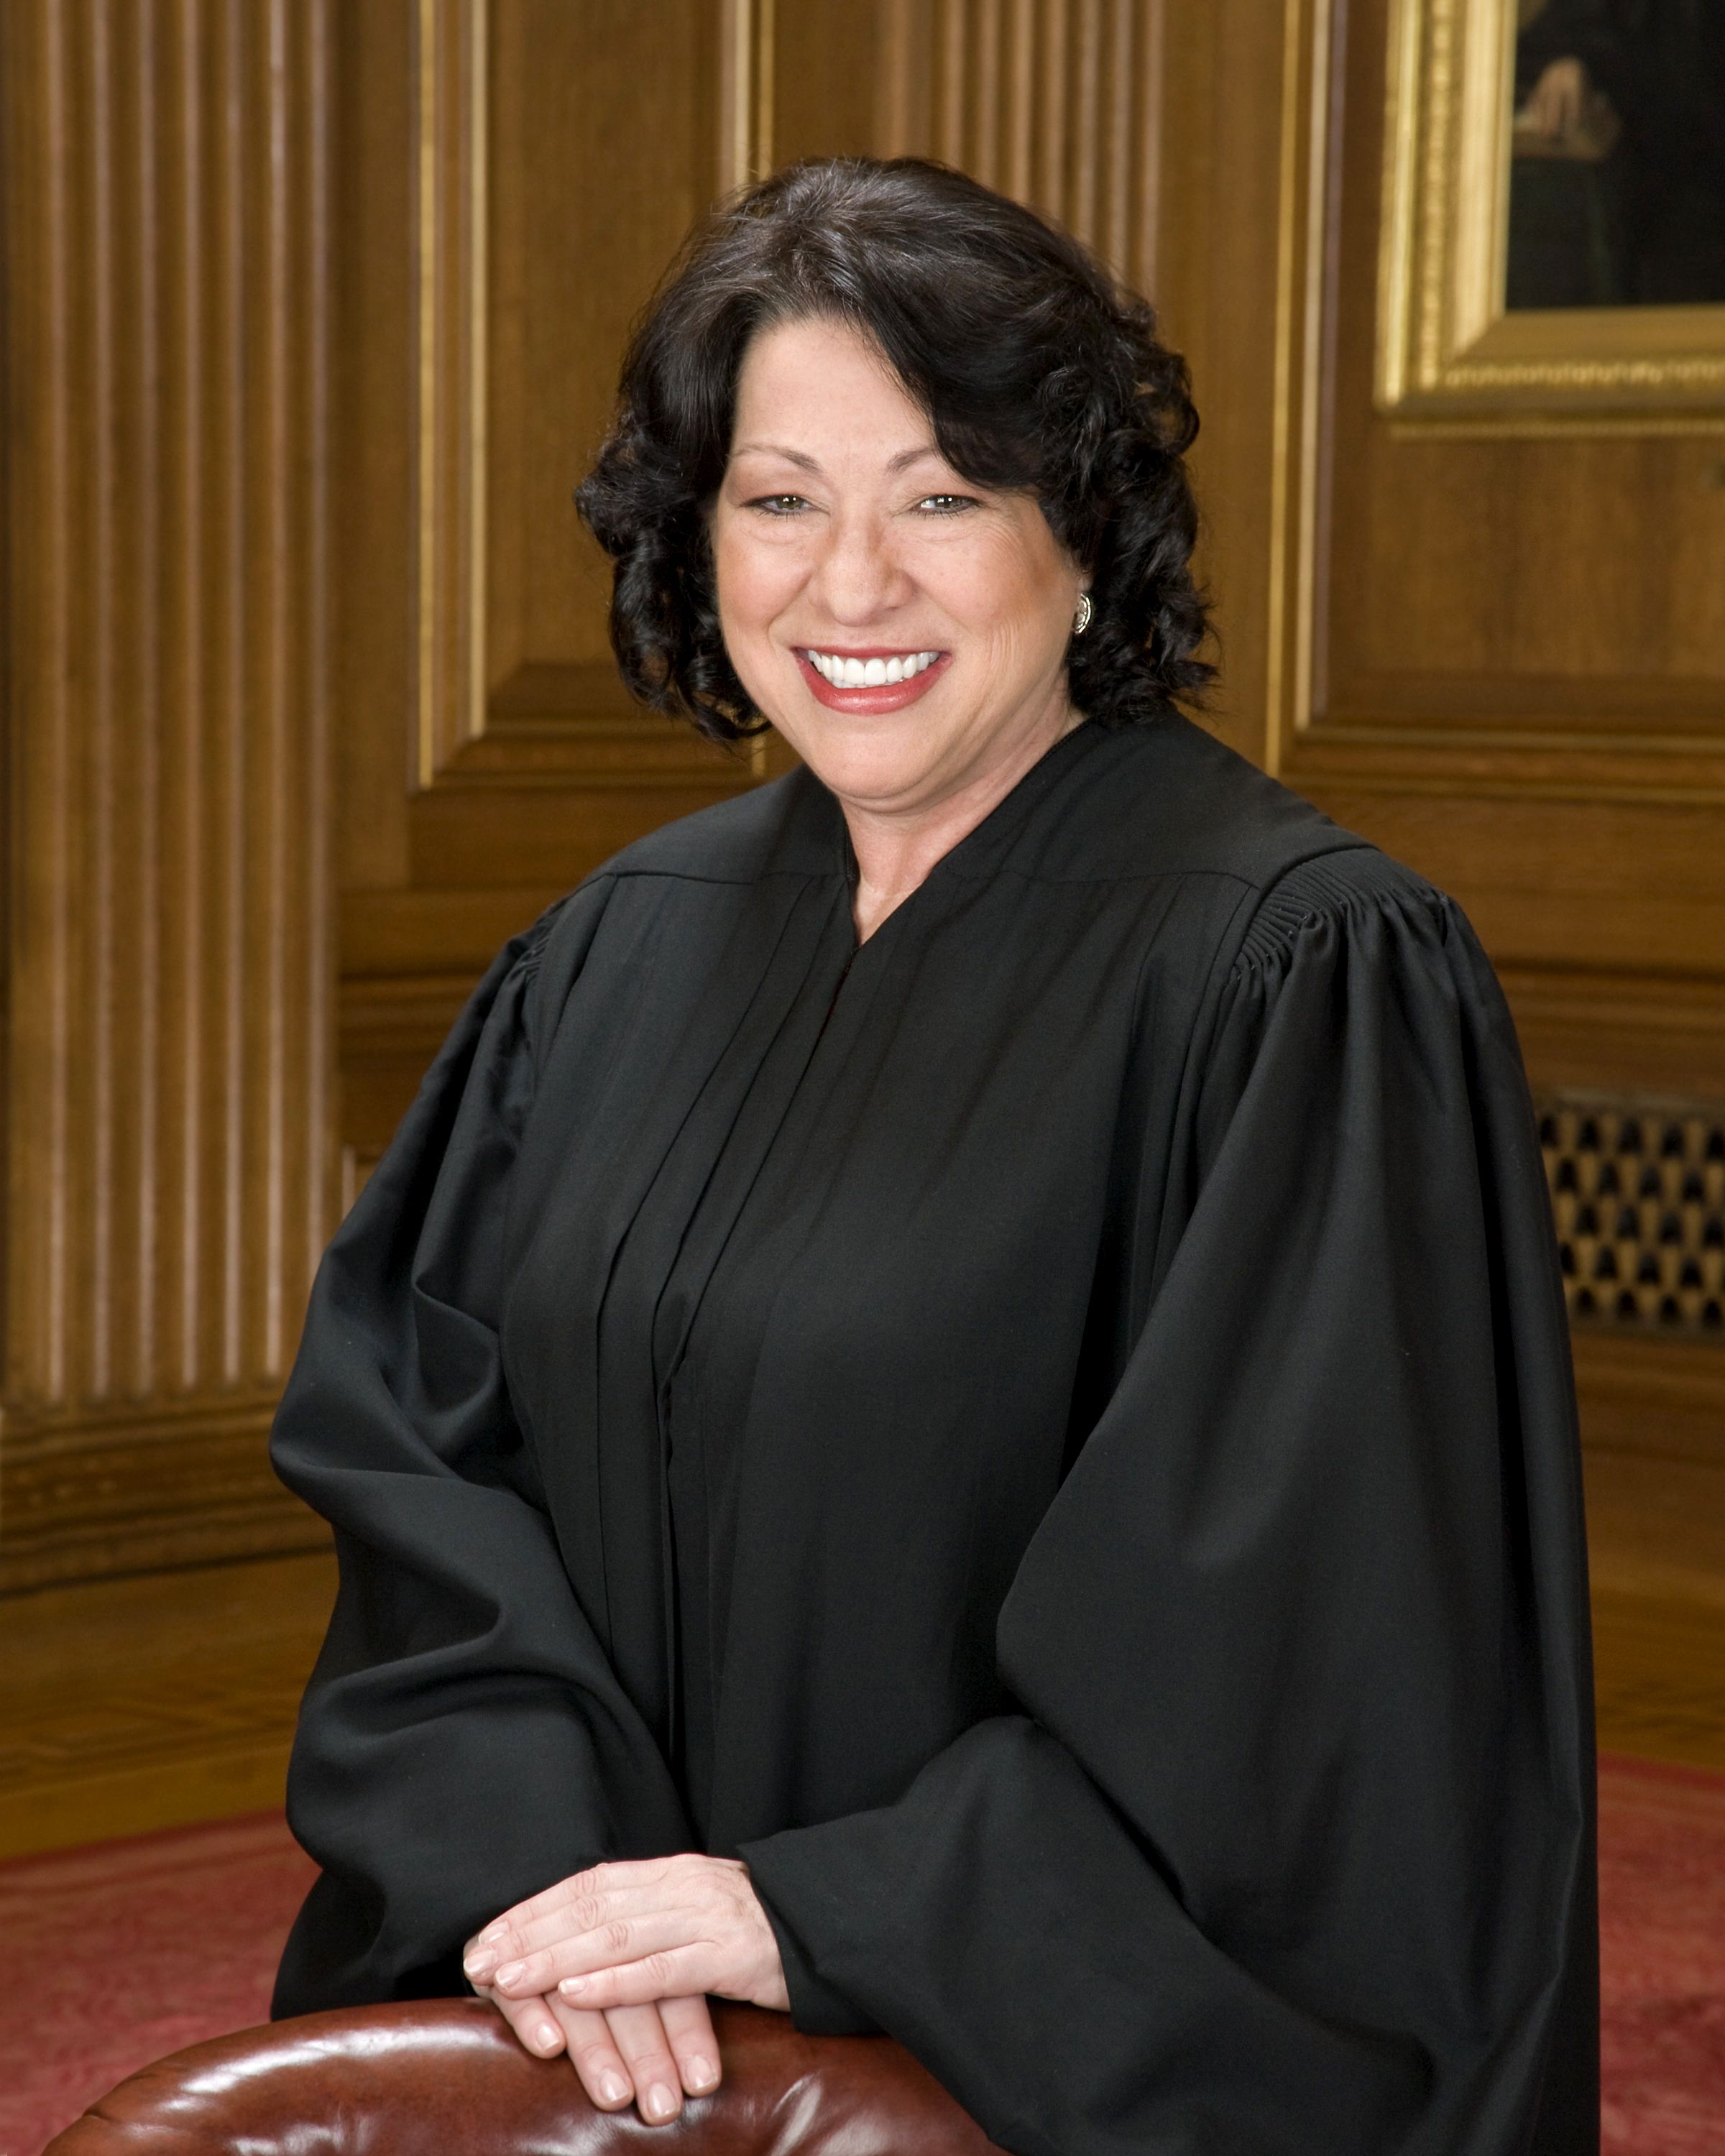 Sonia Sotomayor in SCOTUS robe